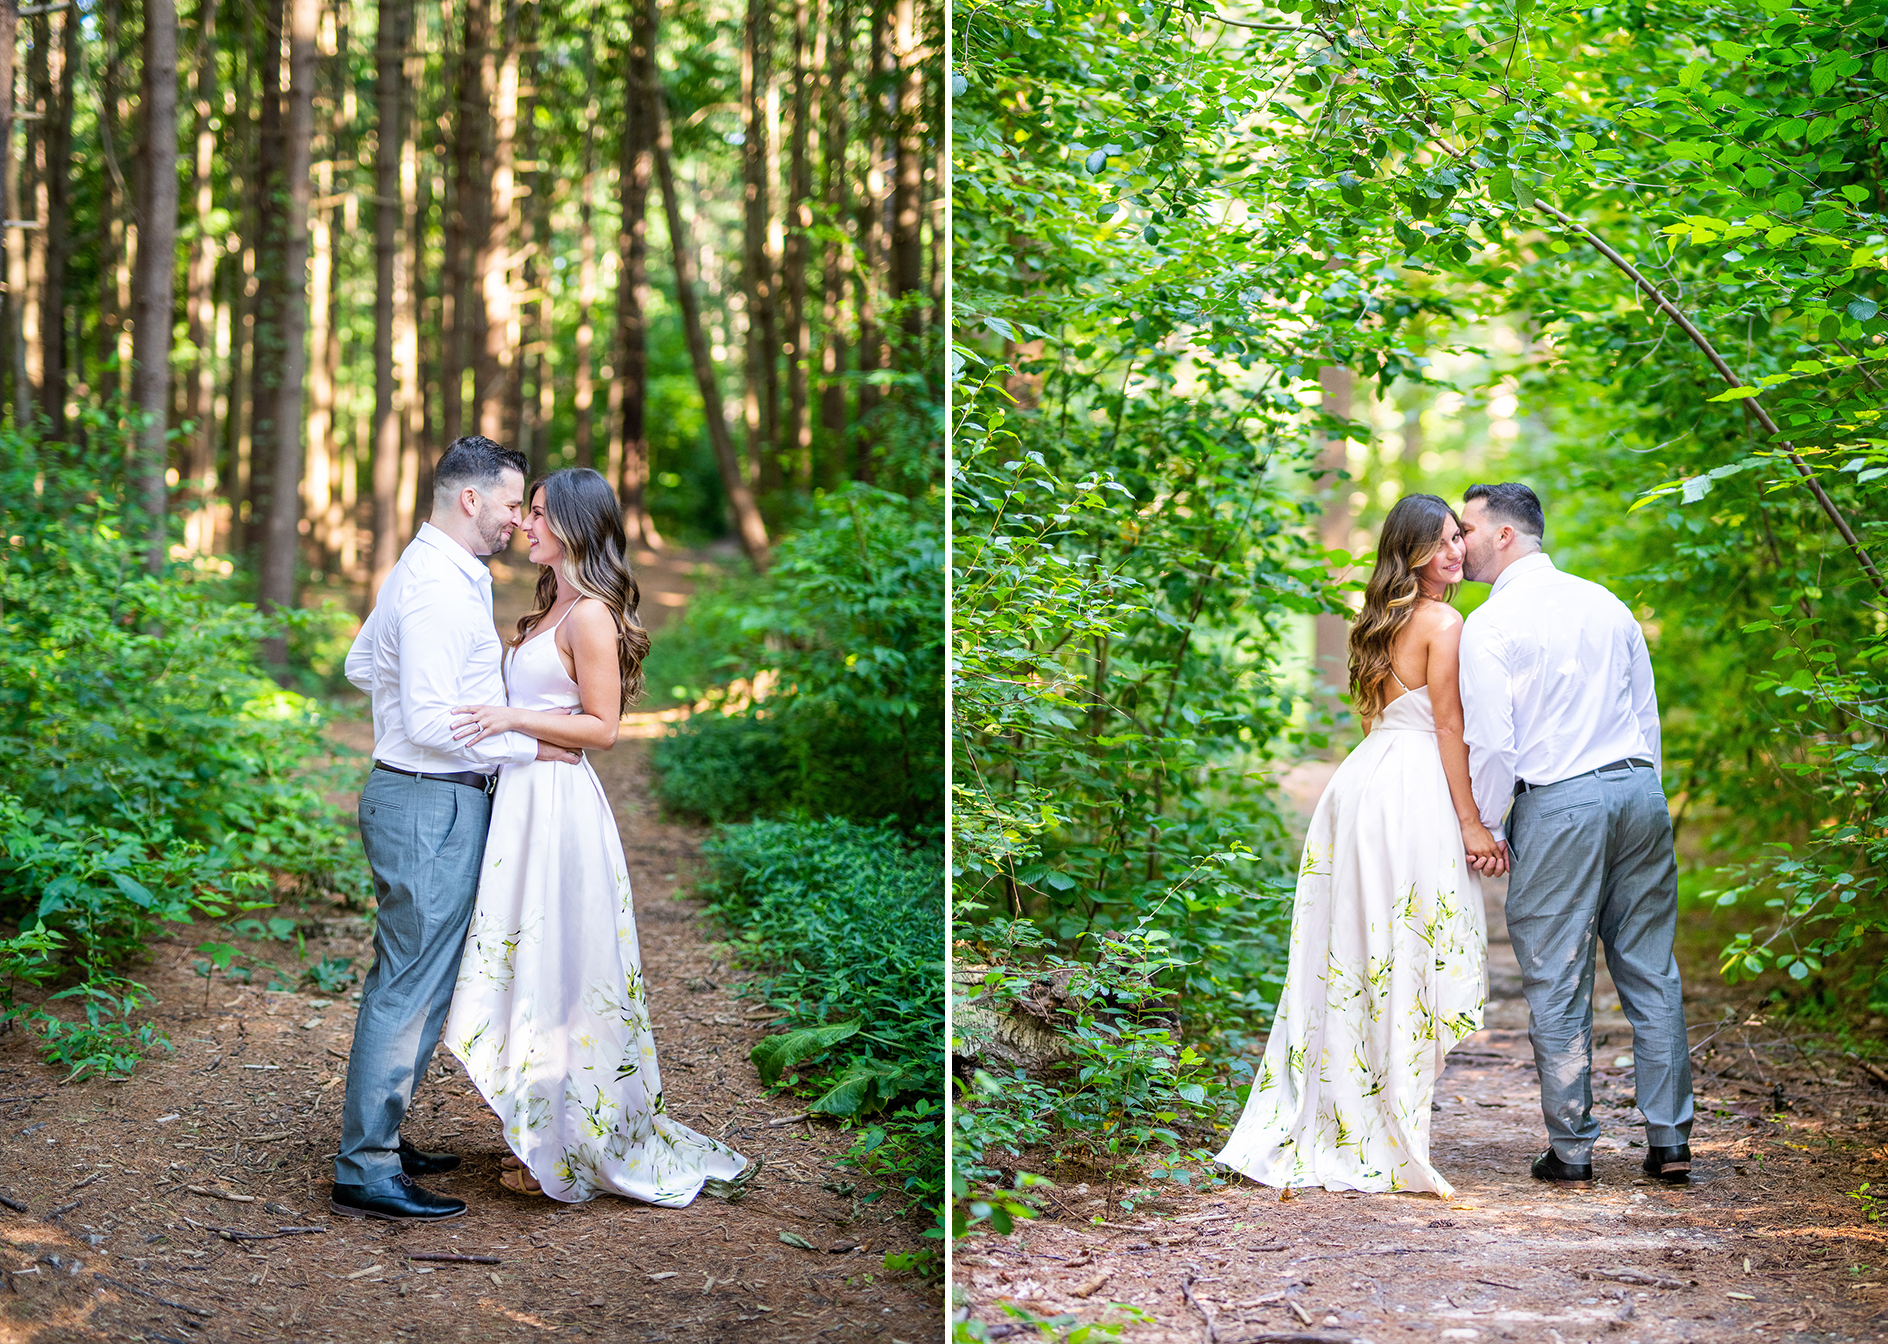 Prosser Pines Engagement Shoot | Long Island Wedding Photographer | Hamptons Wedding Photographer10